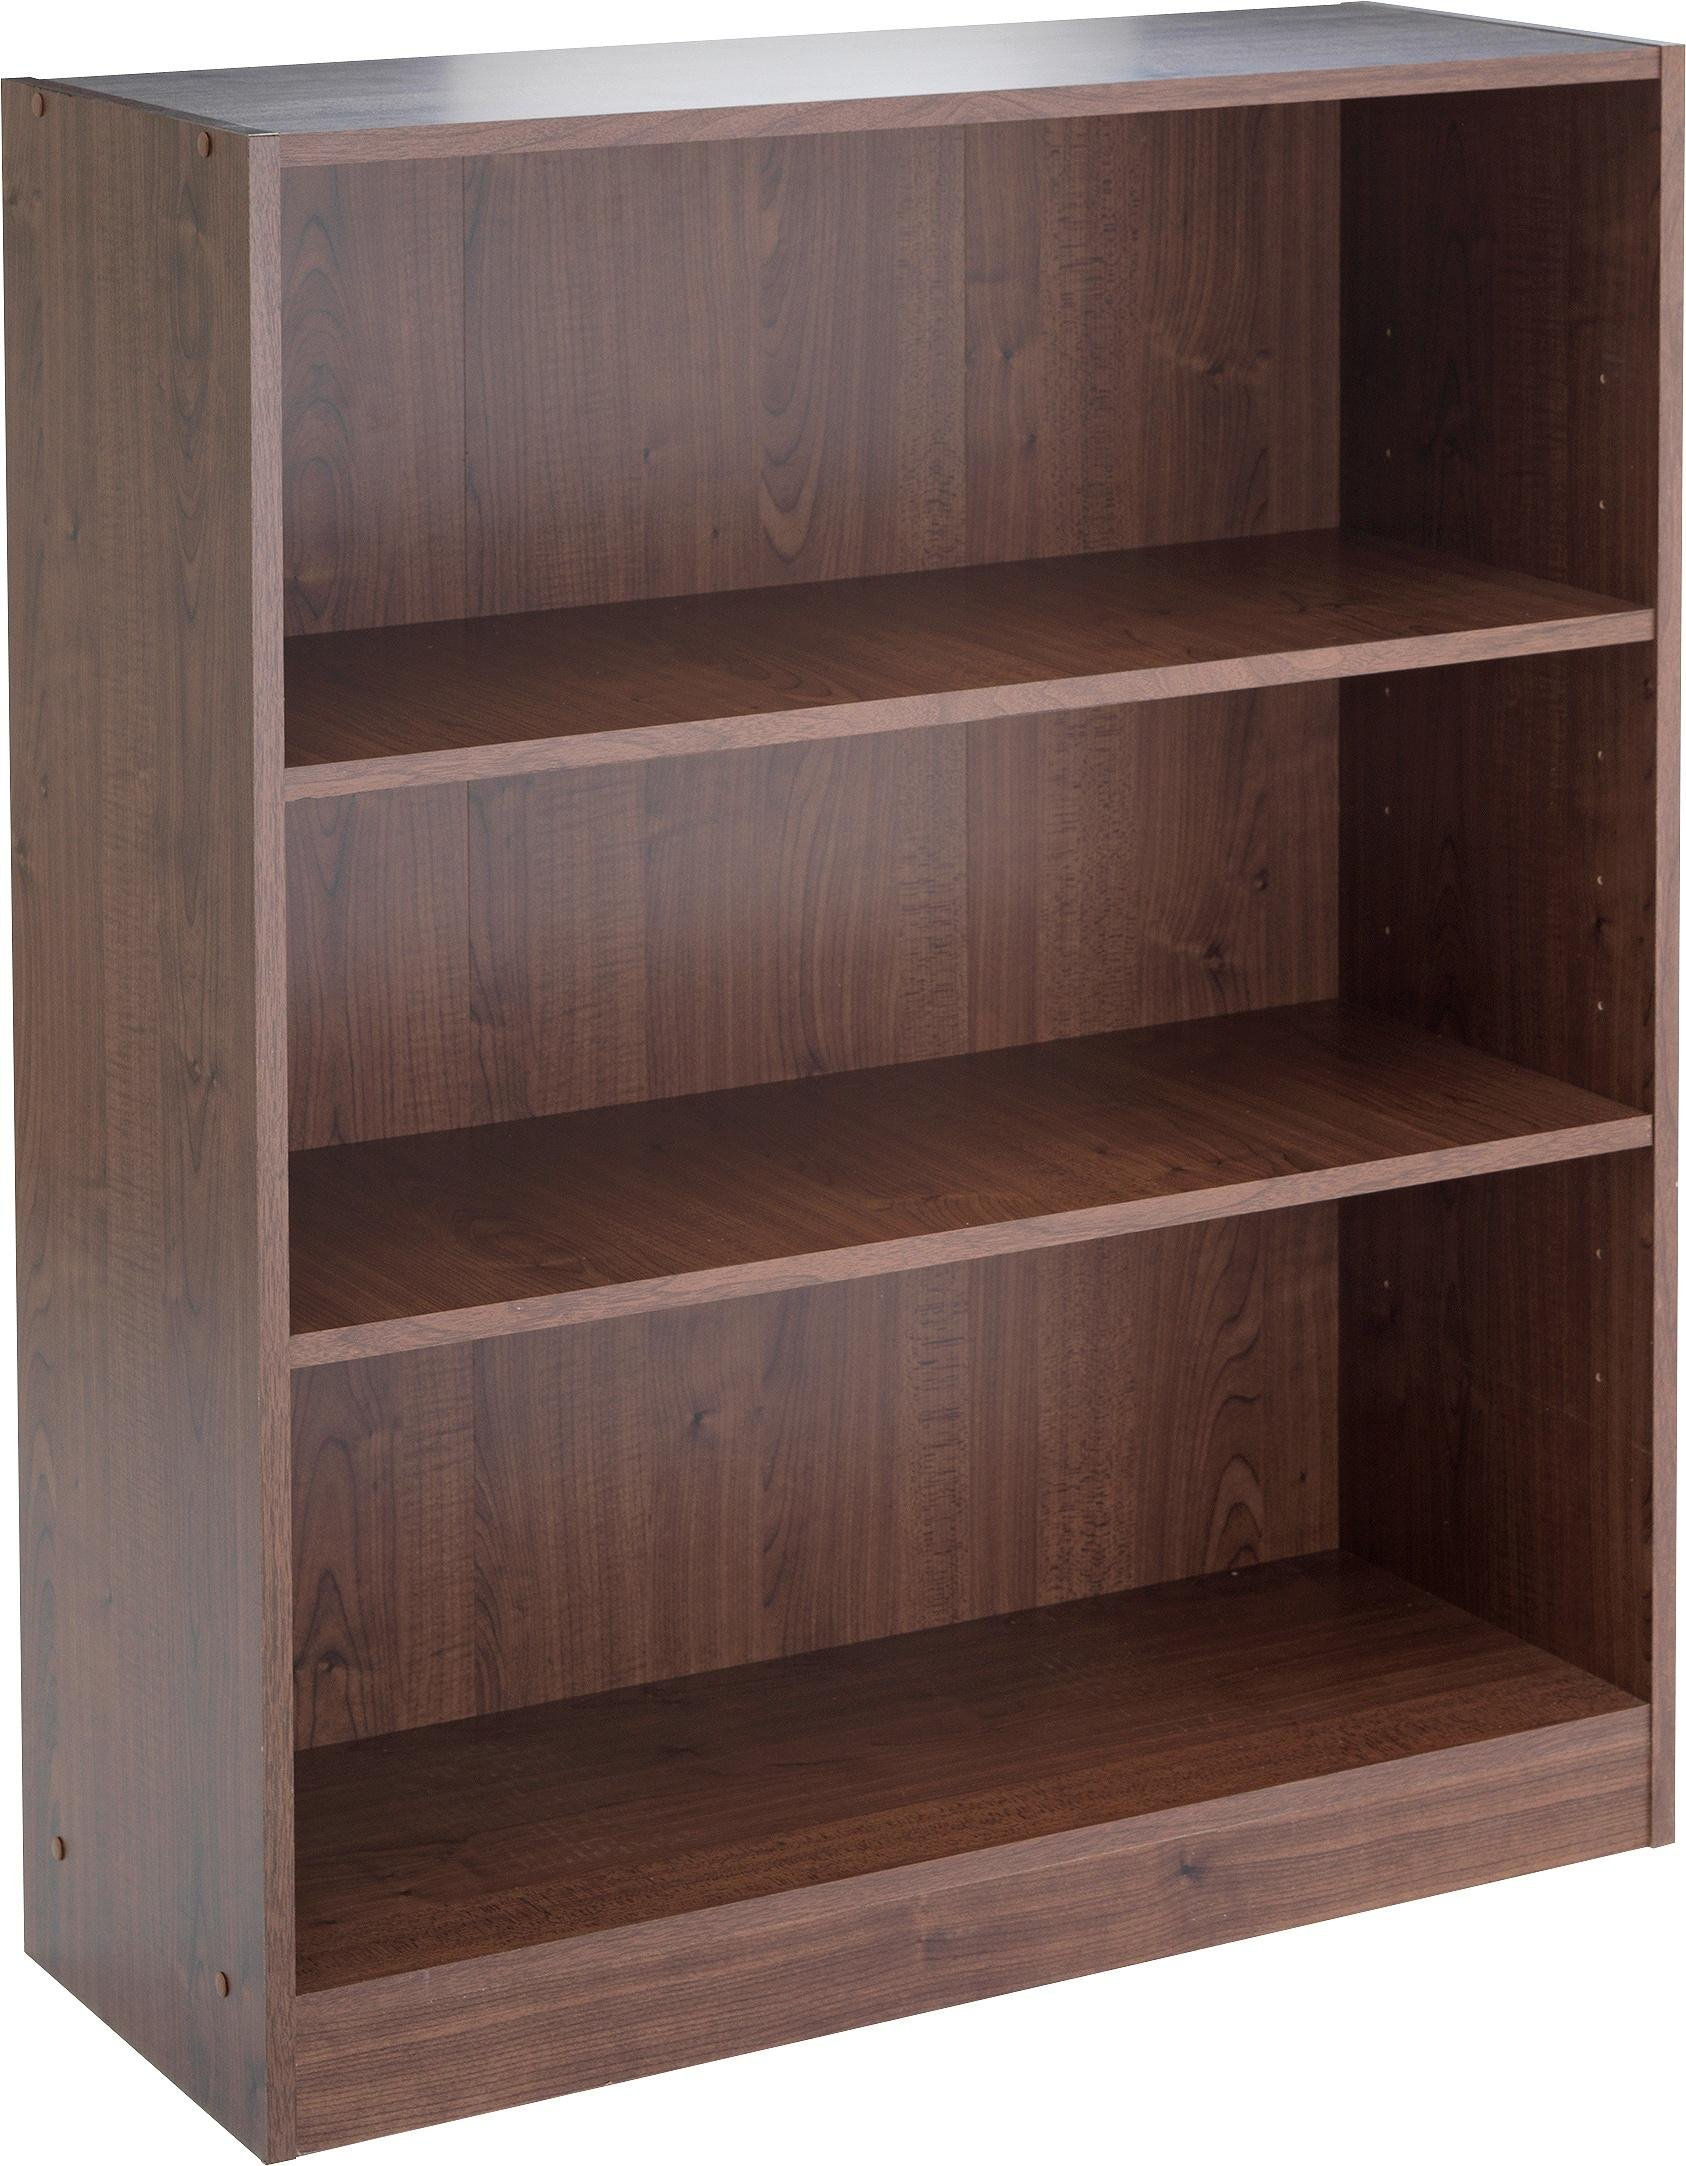 buy home maine small bookcase walnut effect